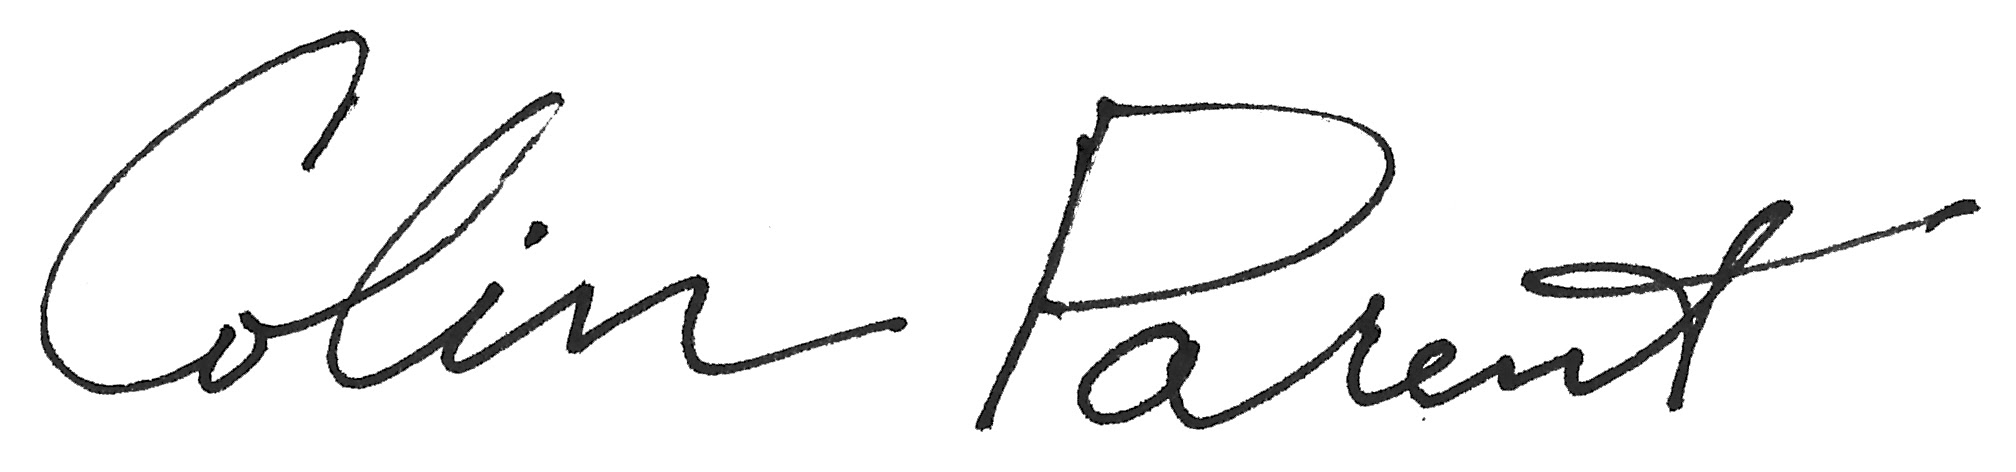 Black_signature_-_Transparent_copy.jpg